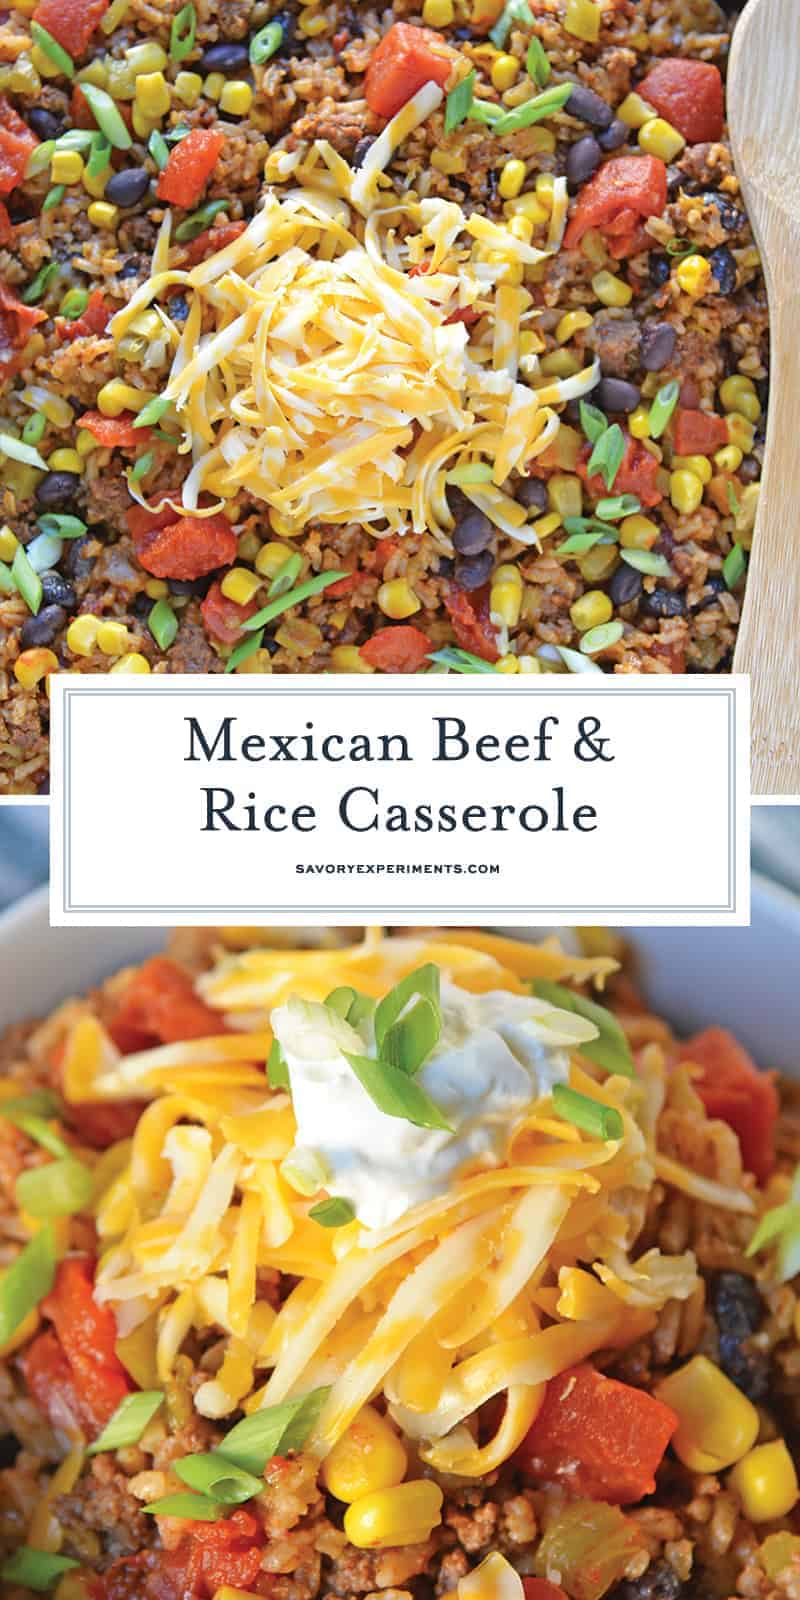 Mexican Beef and Rice Casserole is an easy weeknight recipe using ground beef, taco seasoning and other easy ingredients for a one dish meal! #onedishrecipes #groundbeefrcipes www.savoryexperiments.com